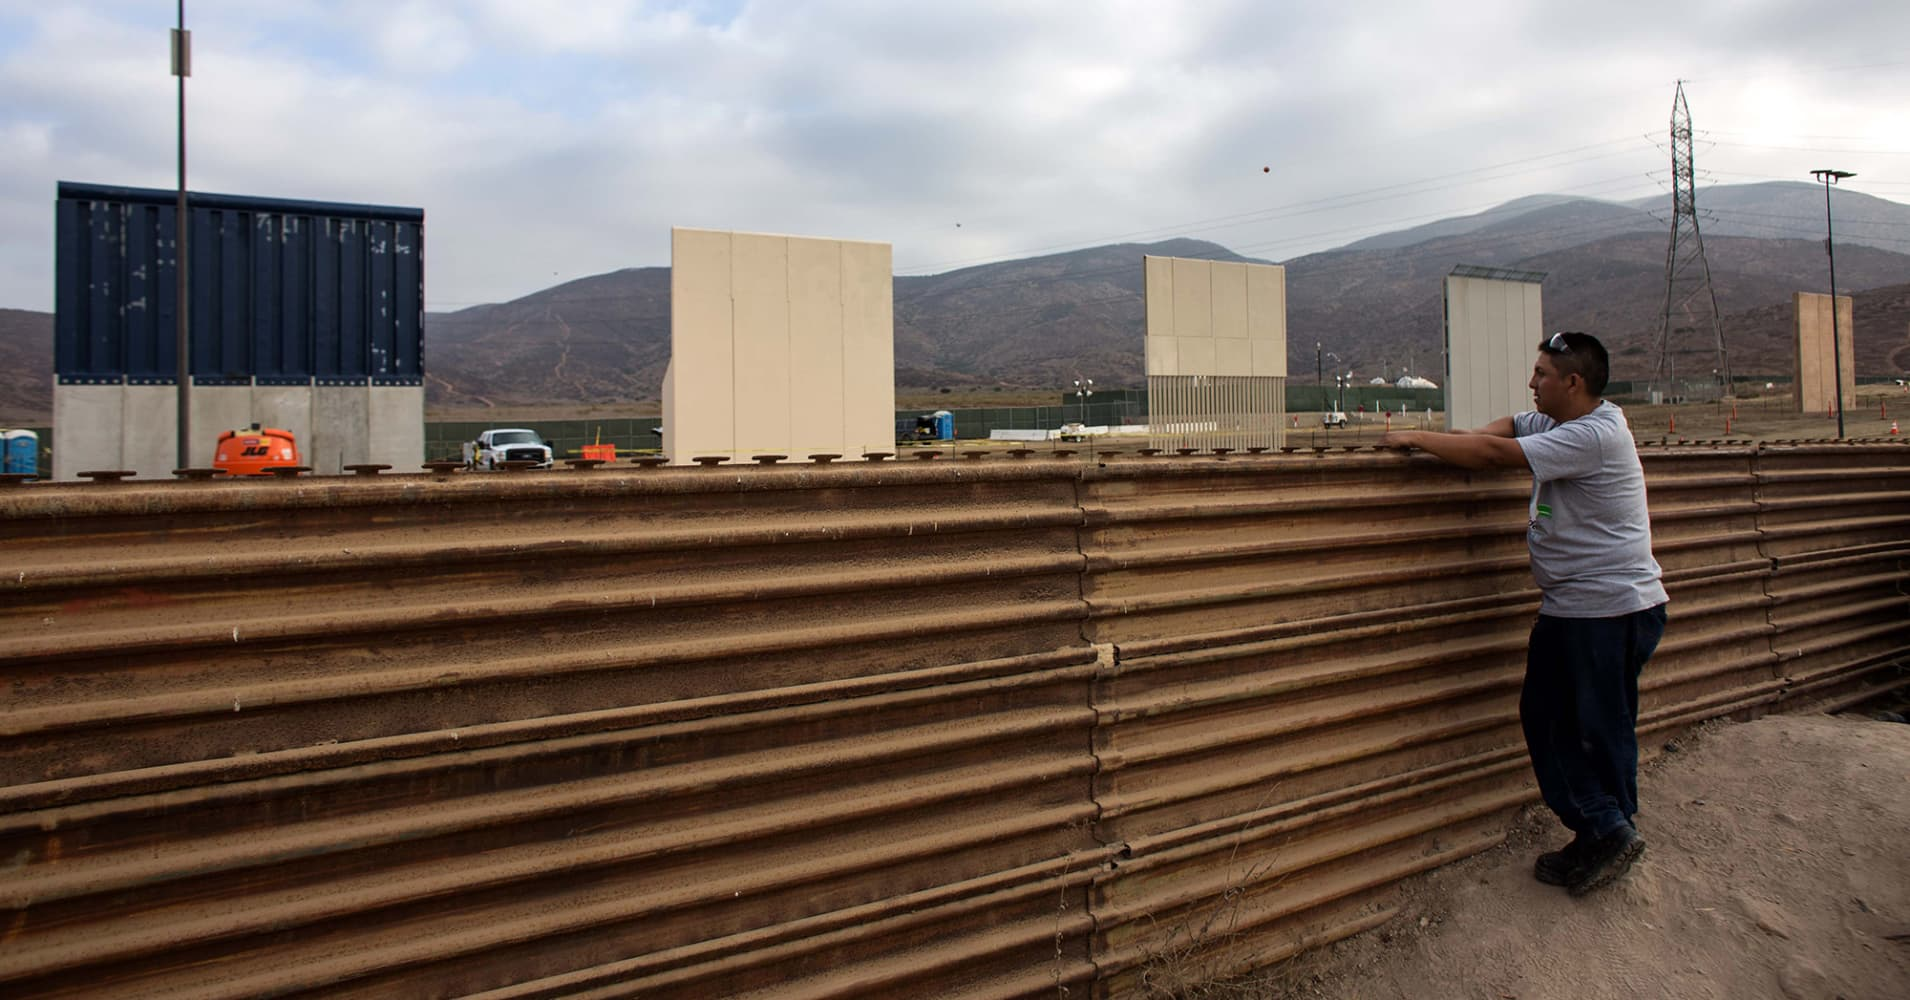 A man watches across the border from Tijuana, Mexico, on October 12, 2017 a prototype of US President Donald Trump's US-Mexico border wall being built near San Diego, in the US, Following up on President Donald Trump's campaign promise to build a wall along the entire 3,200 kilometre (2,000 mile) Mexican frontier, the Department of Homeland Security began building prototypes for the barrier along the border in San Diego and Imperial counties, as it announced in August.